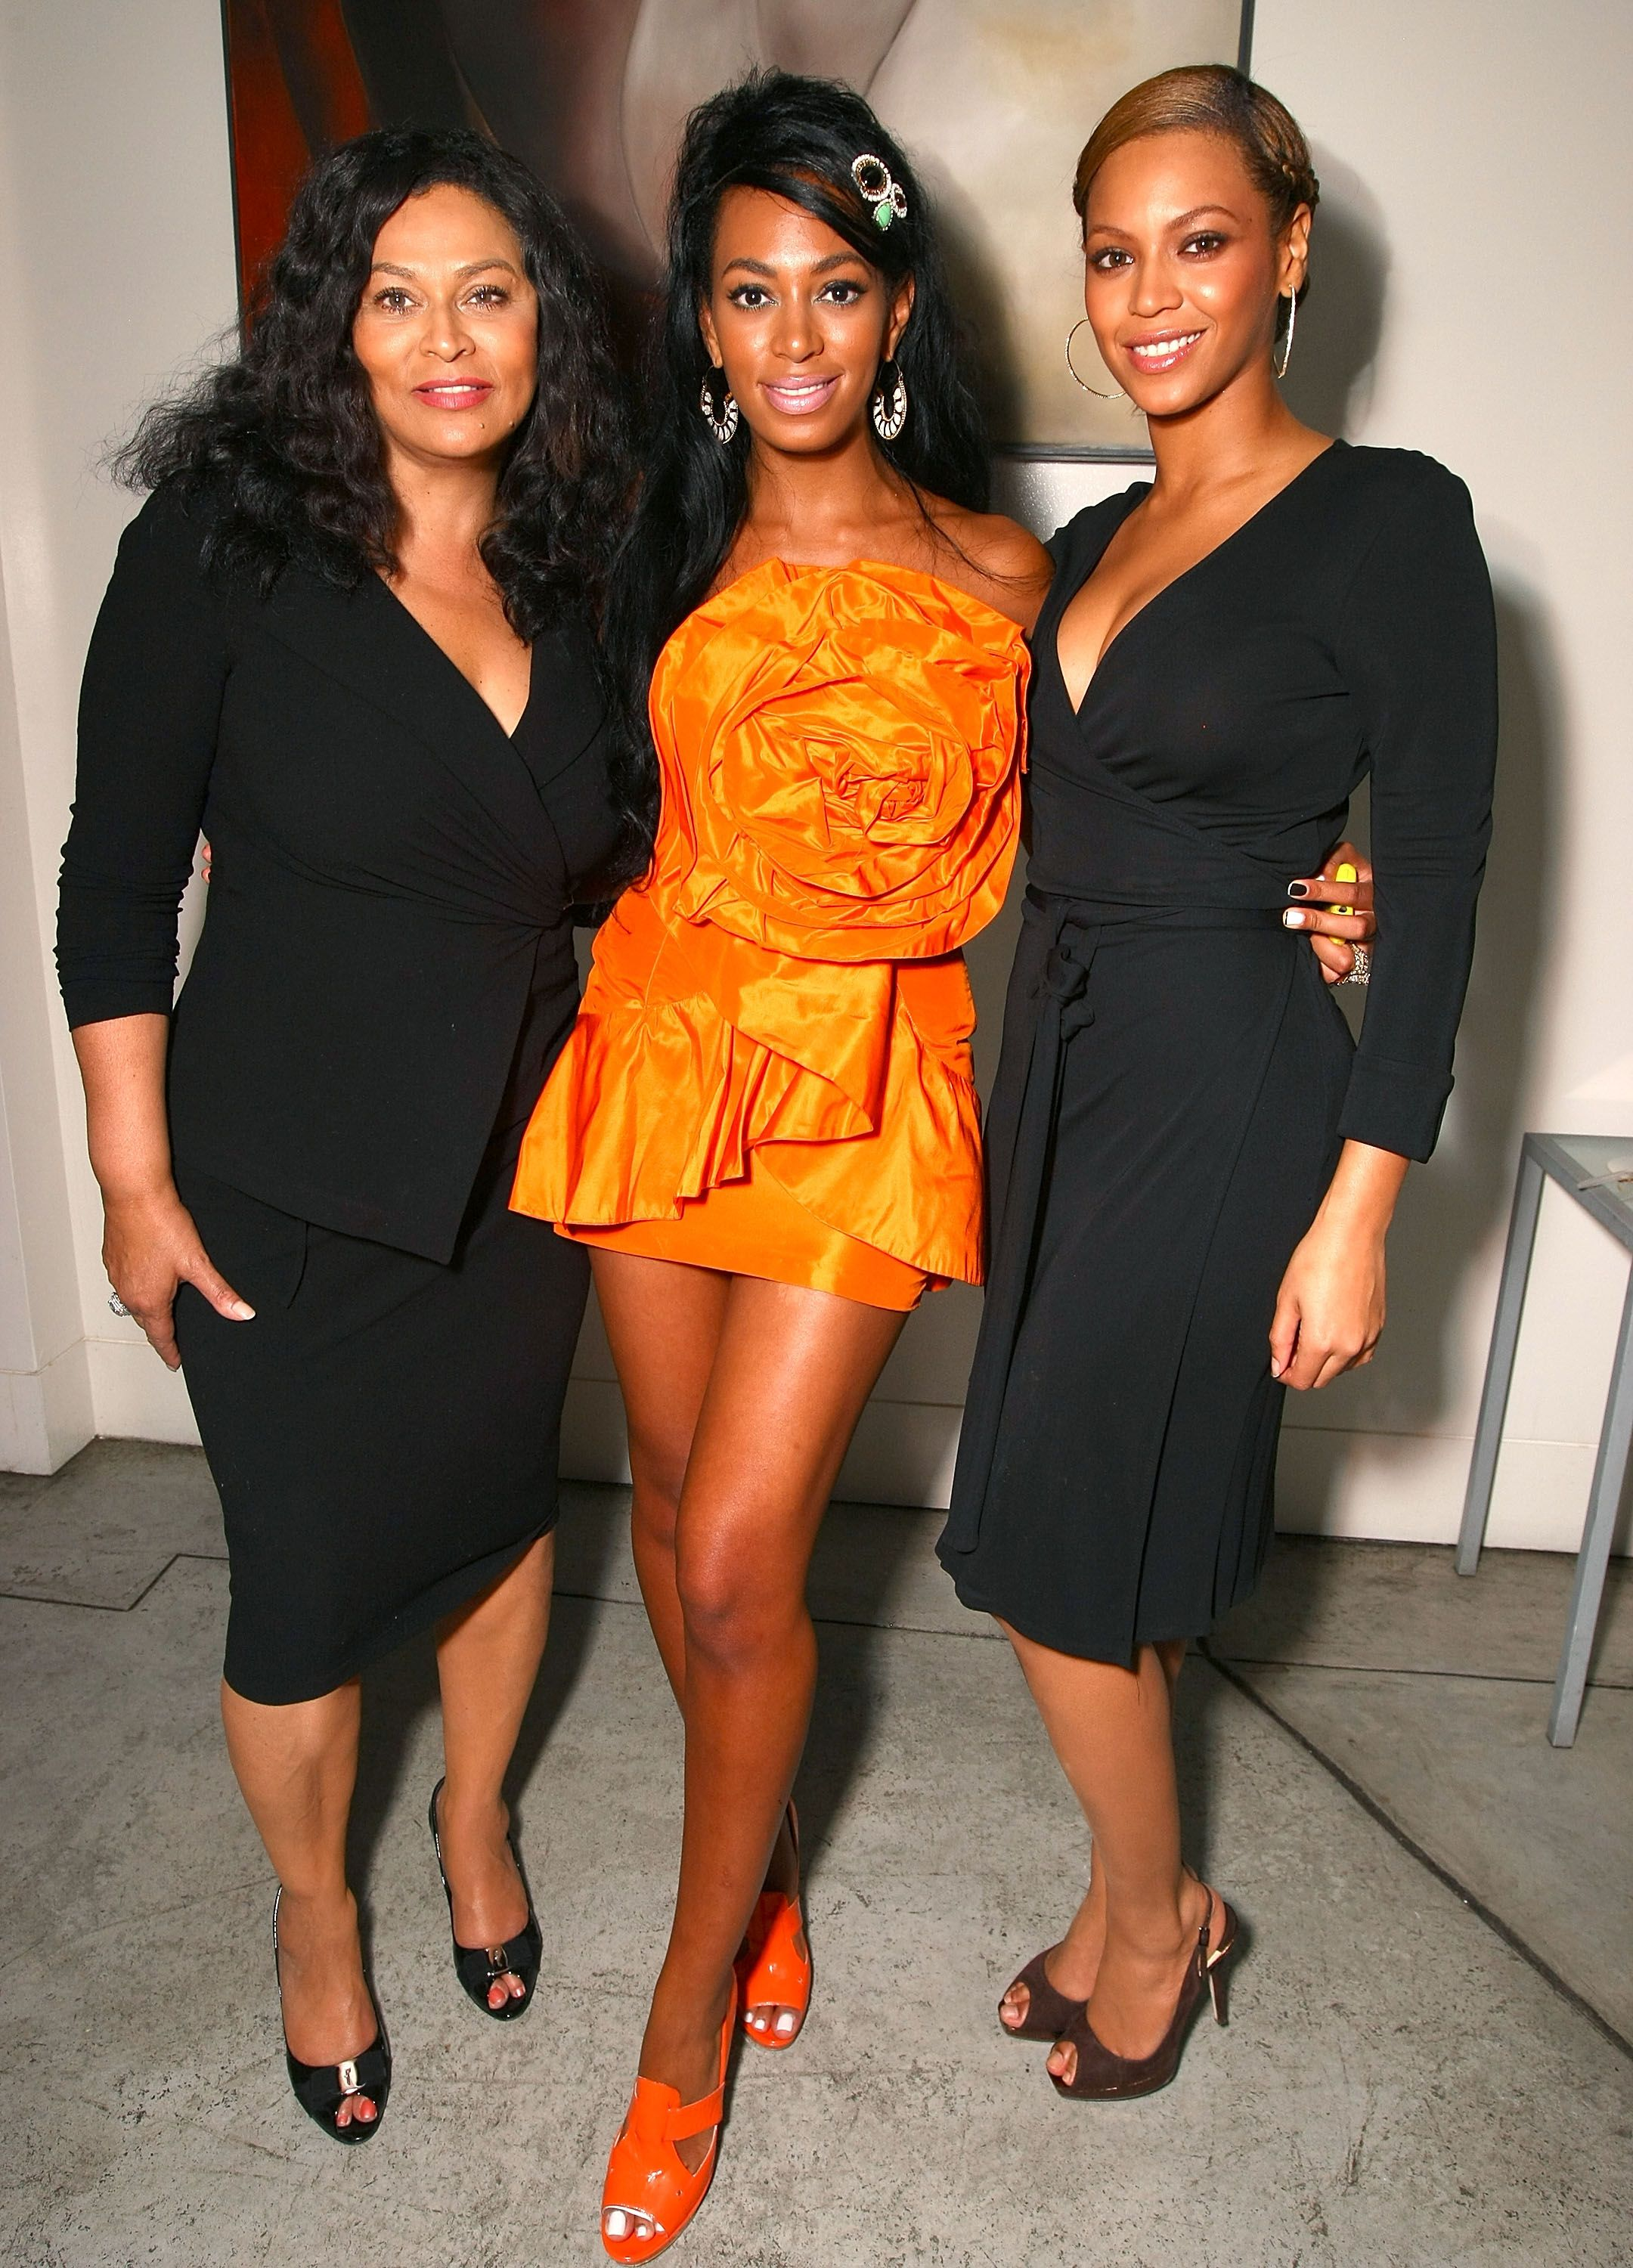 Beyonce, Solange and Tina Lawson